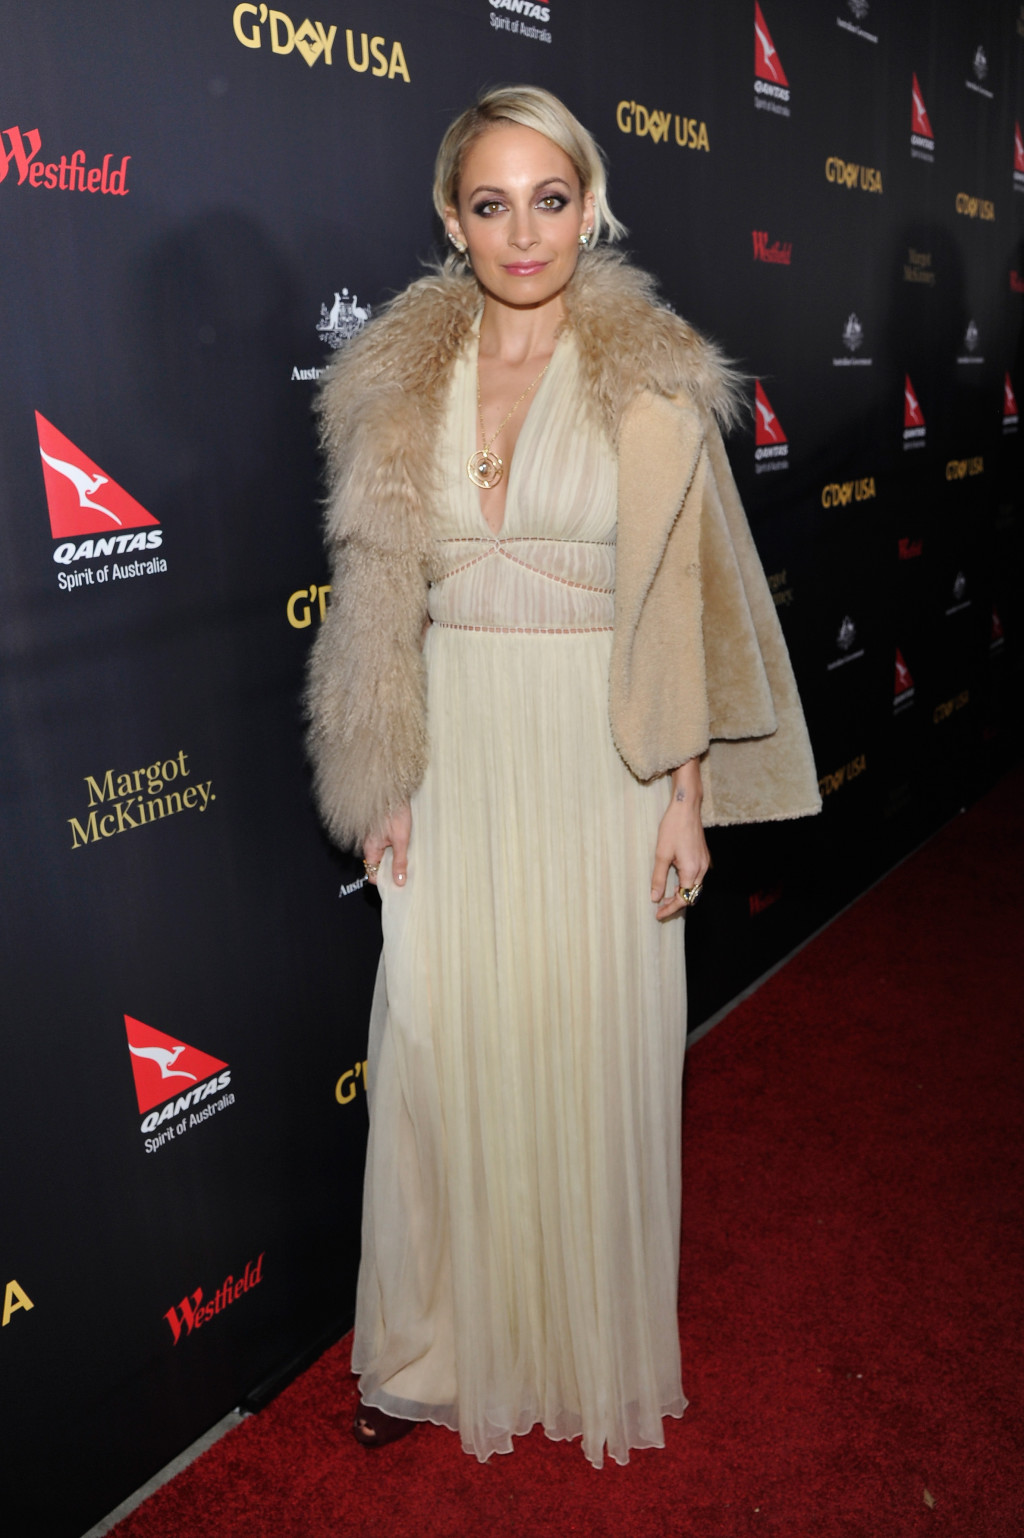 Nicole Richie in a beige Alberta Ferretti gown at the G'Day USA 2016 Black Tie Gala